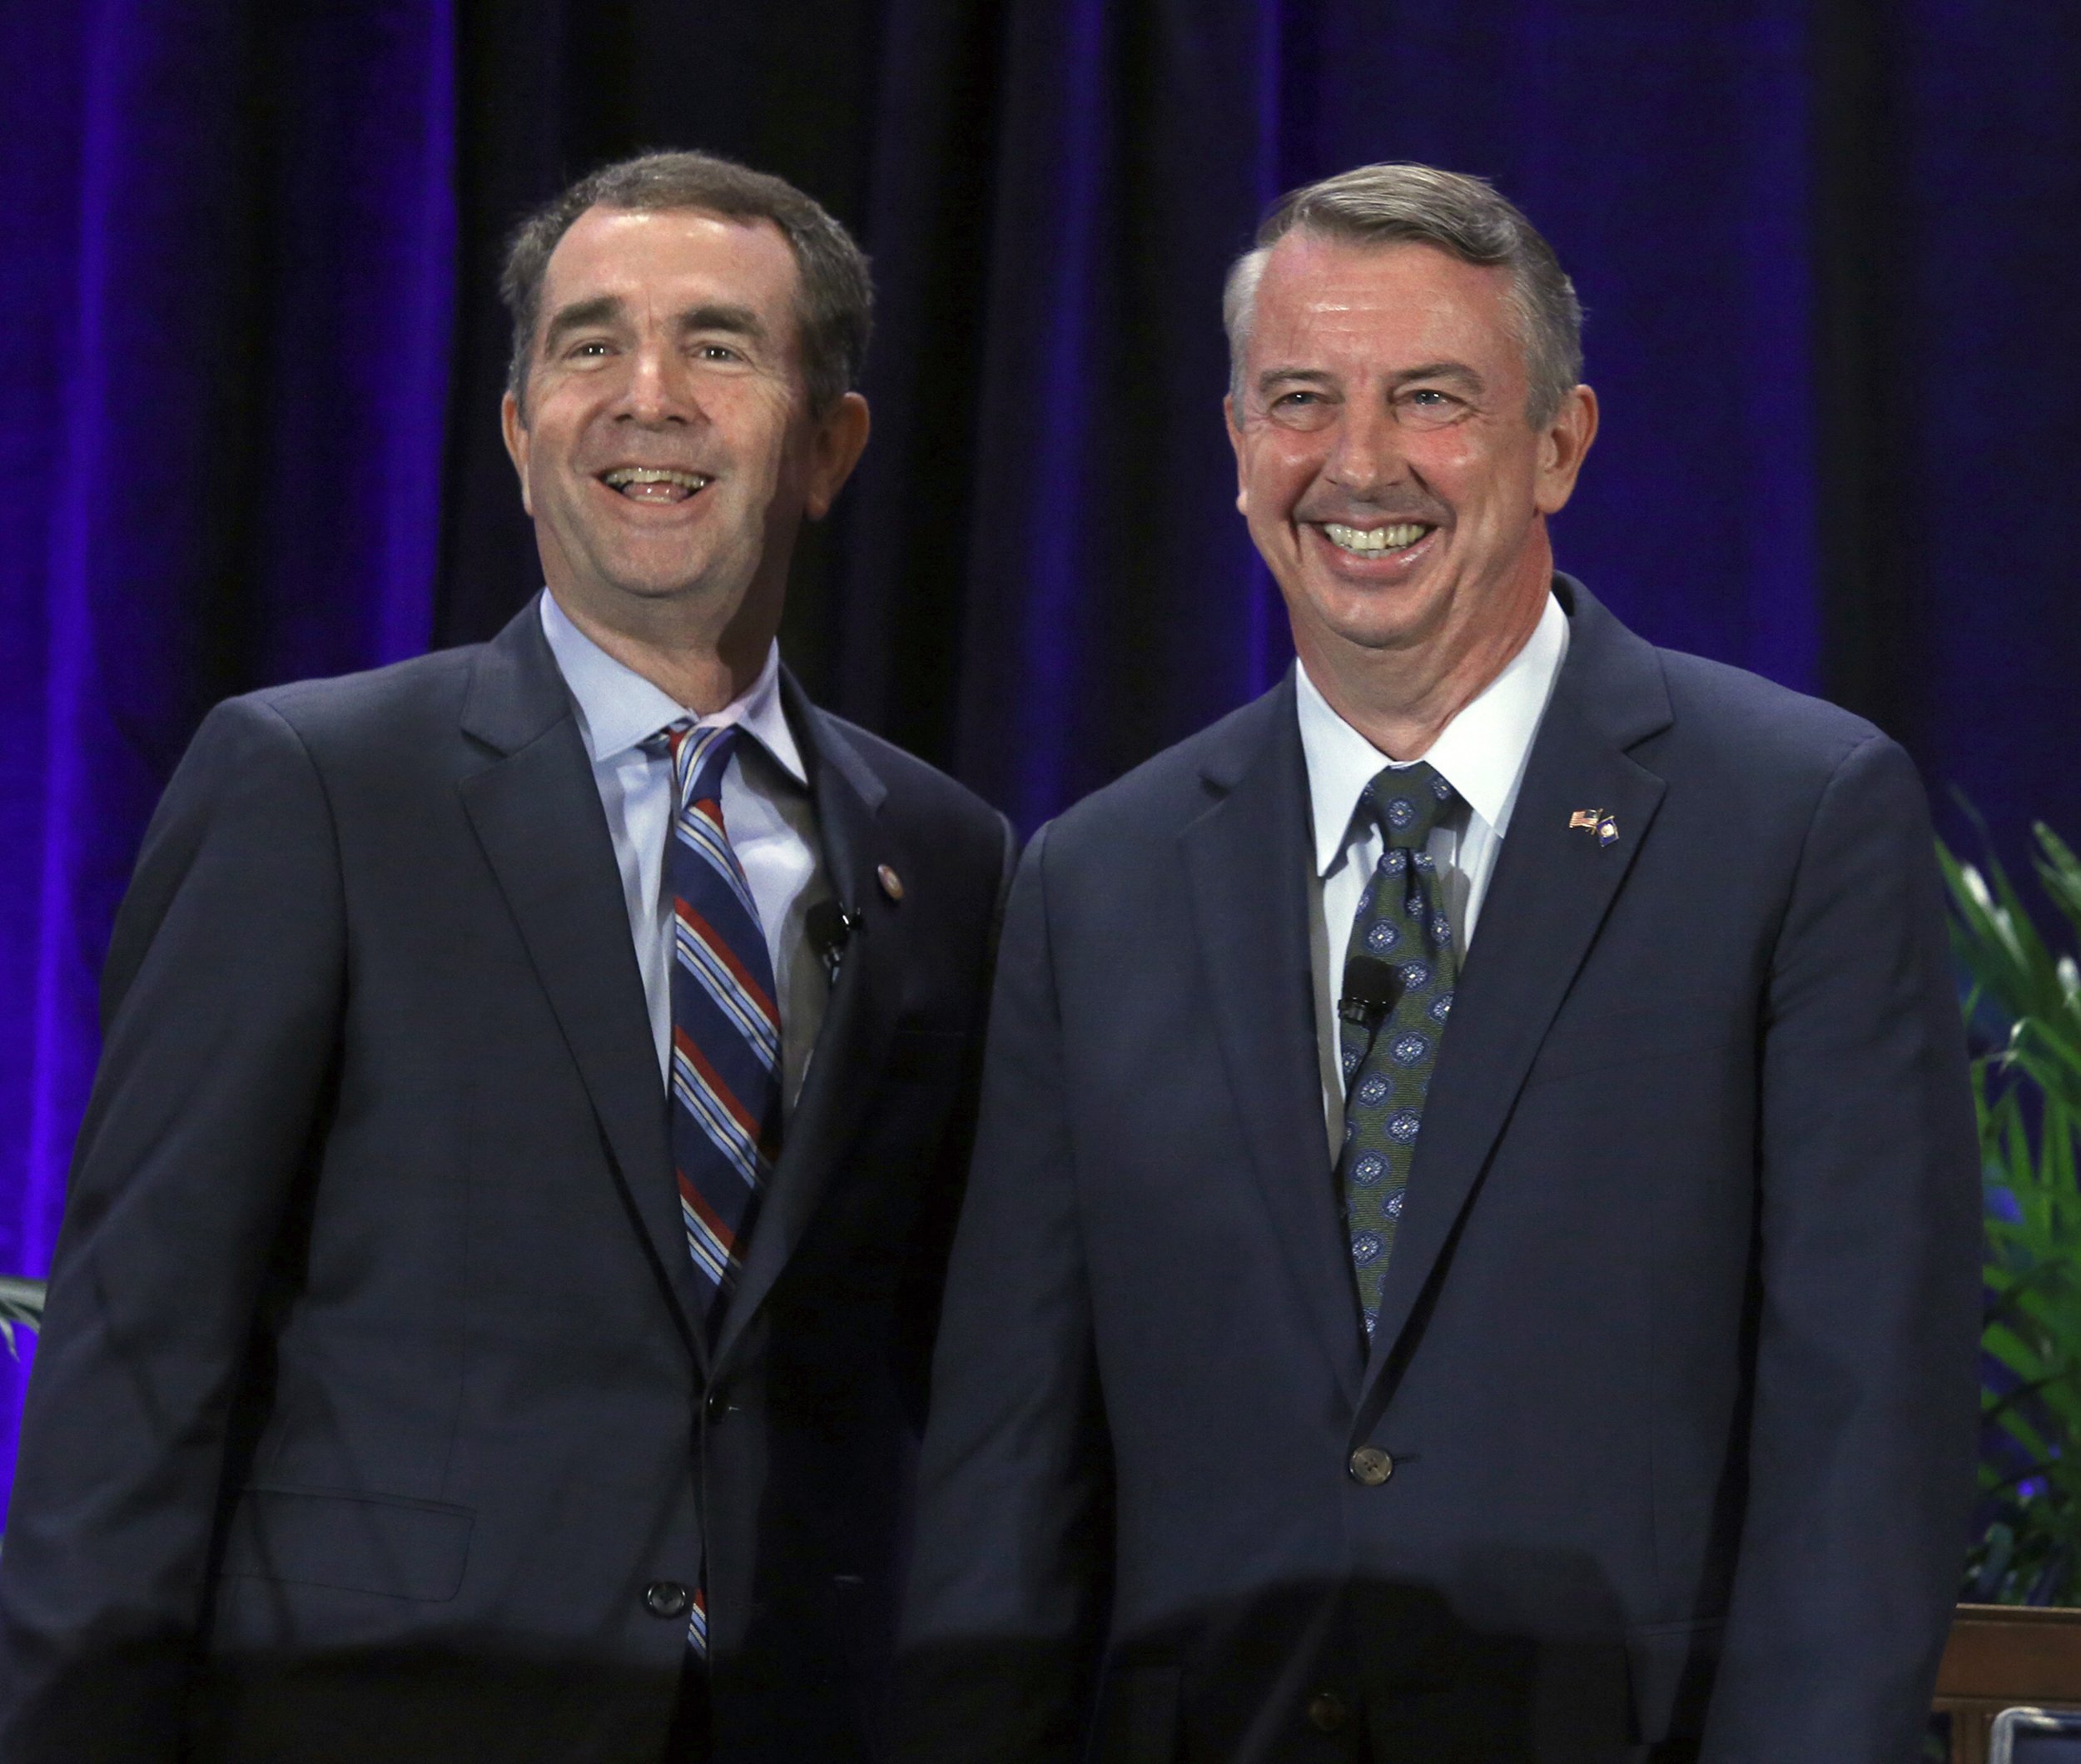 Image: Ralph Northam and Ed Gillespie